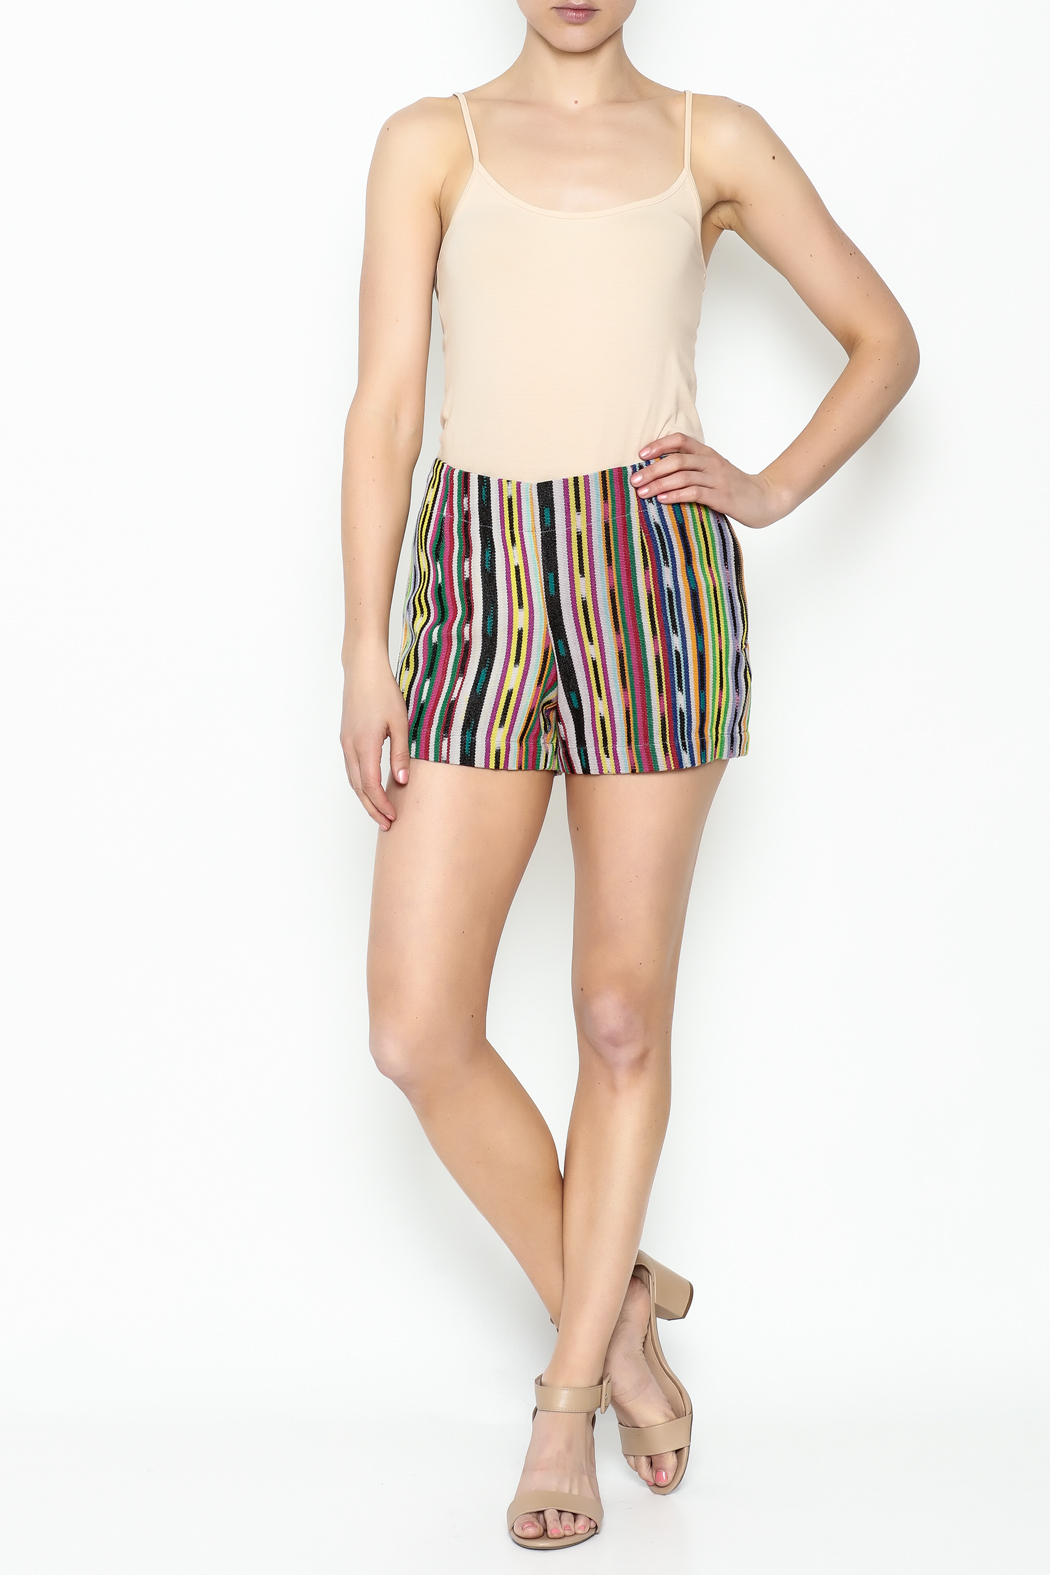 Ivy Jane Serape Printed Shorts - Side Cropped Image